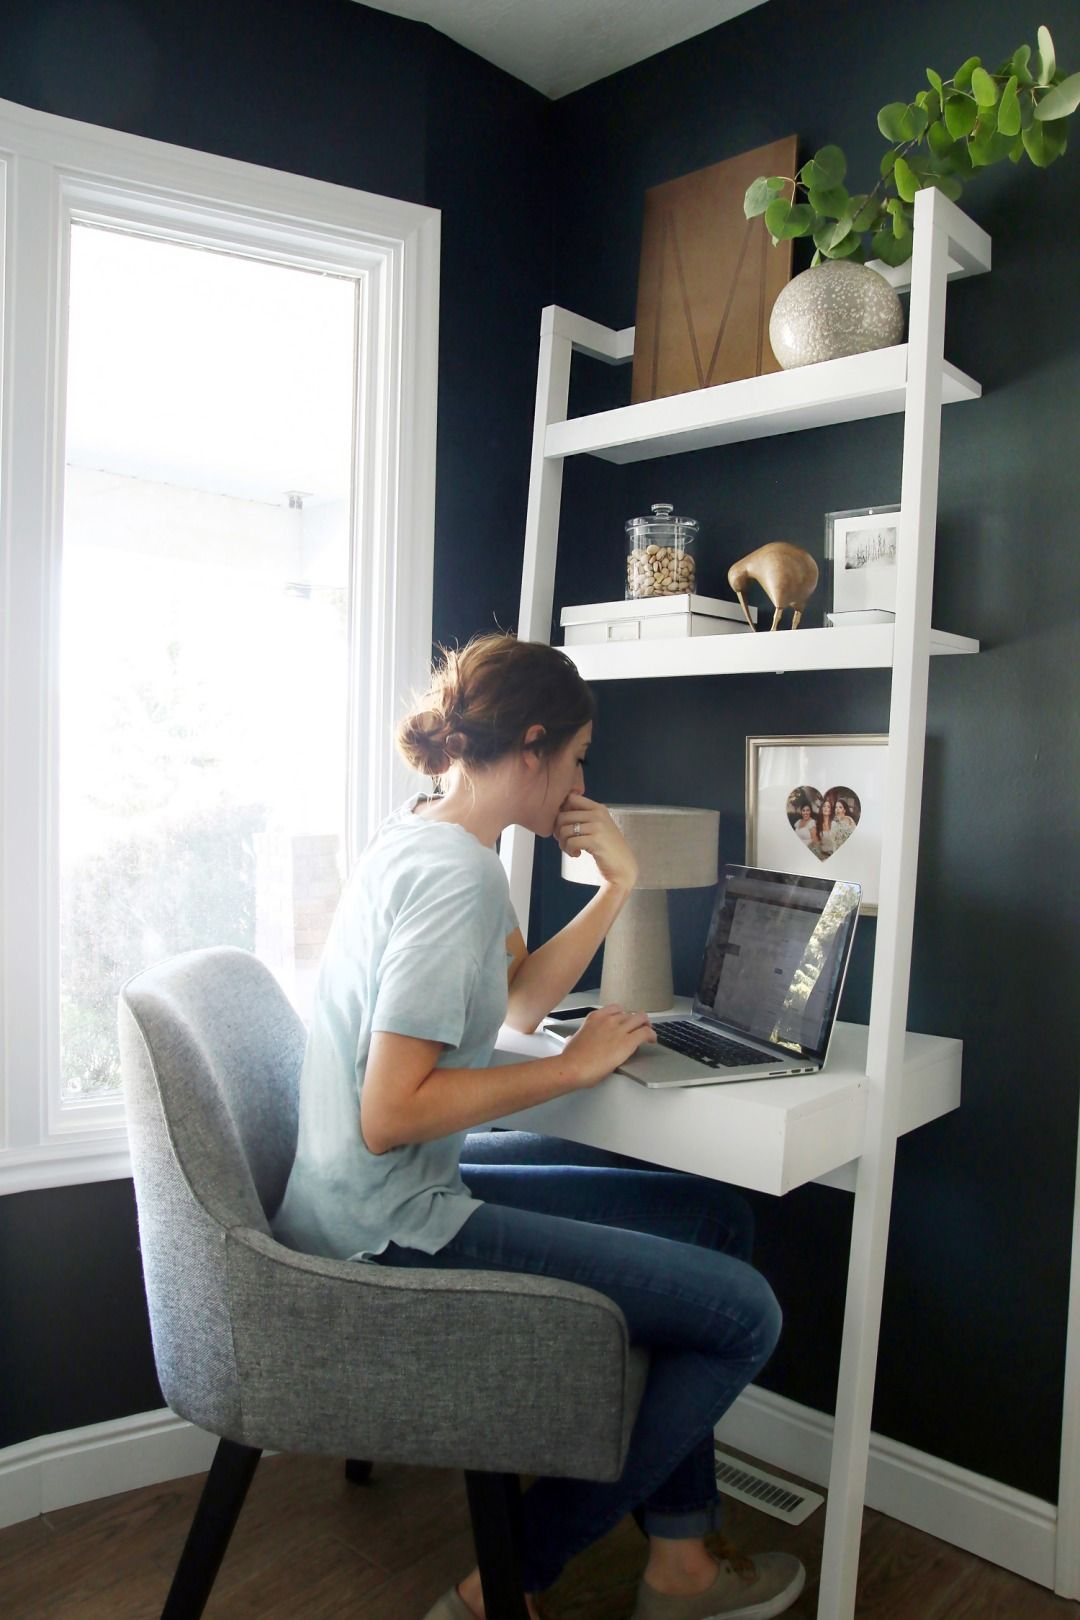 office designs for small spaces. Fine Office Create A Stylish Productive Little Nook Even When Space Is Tight With  Our Chic Modern Home Office Ideas For Small Spaces From Chrislovesjulia For Office Designs Small Spaces